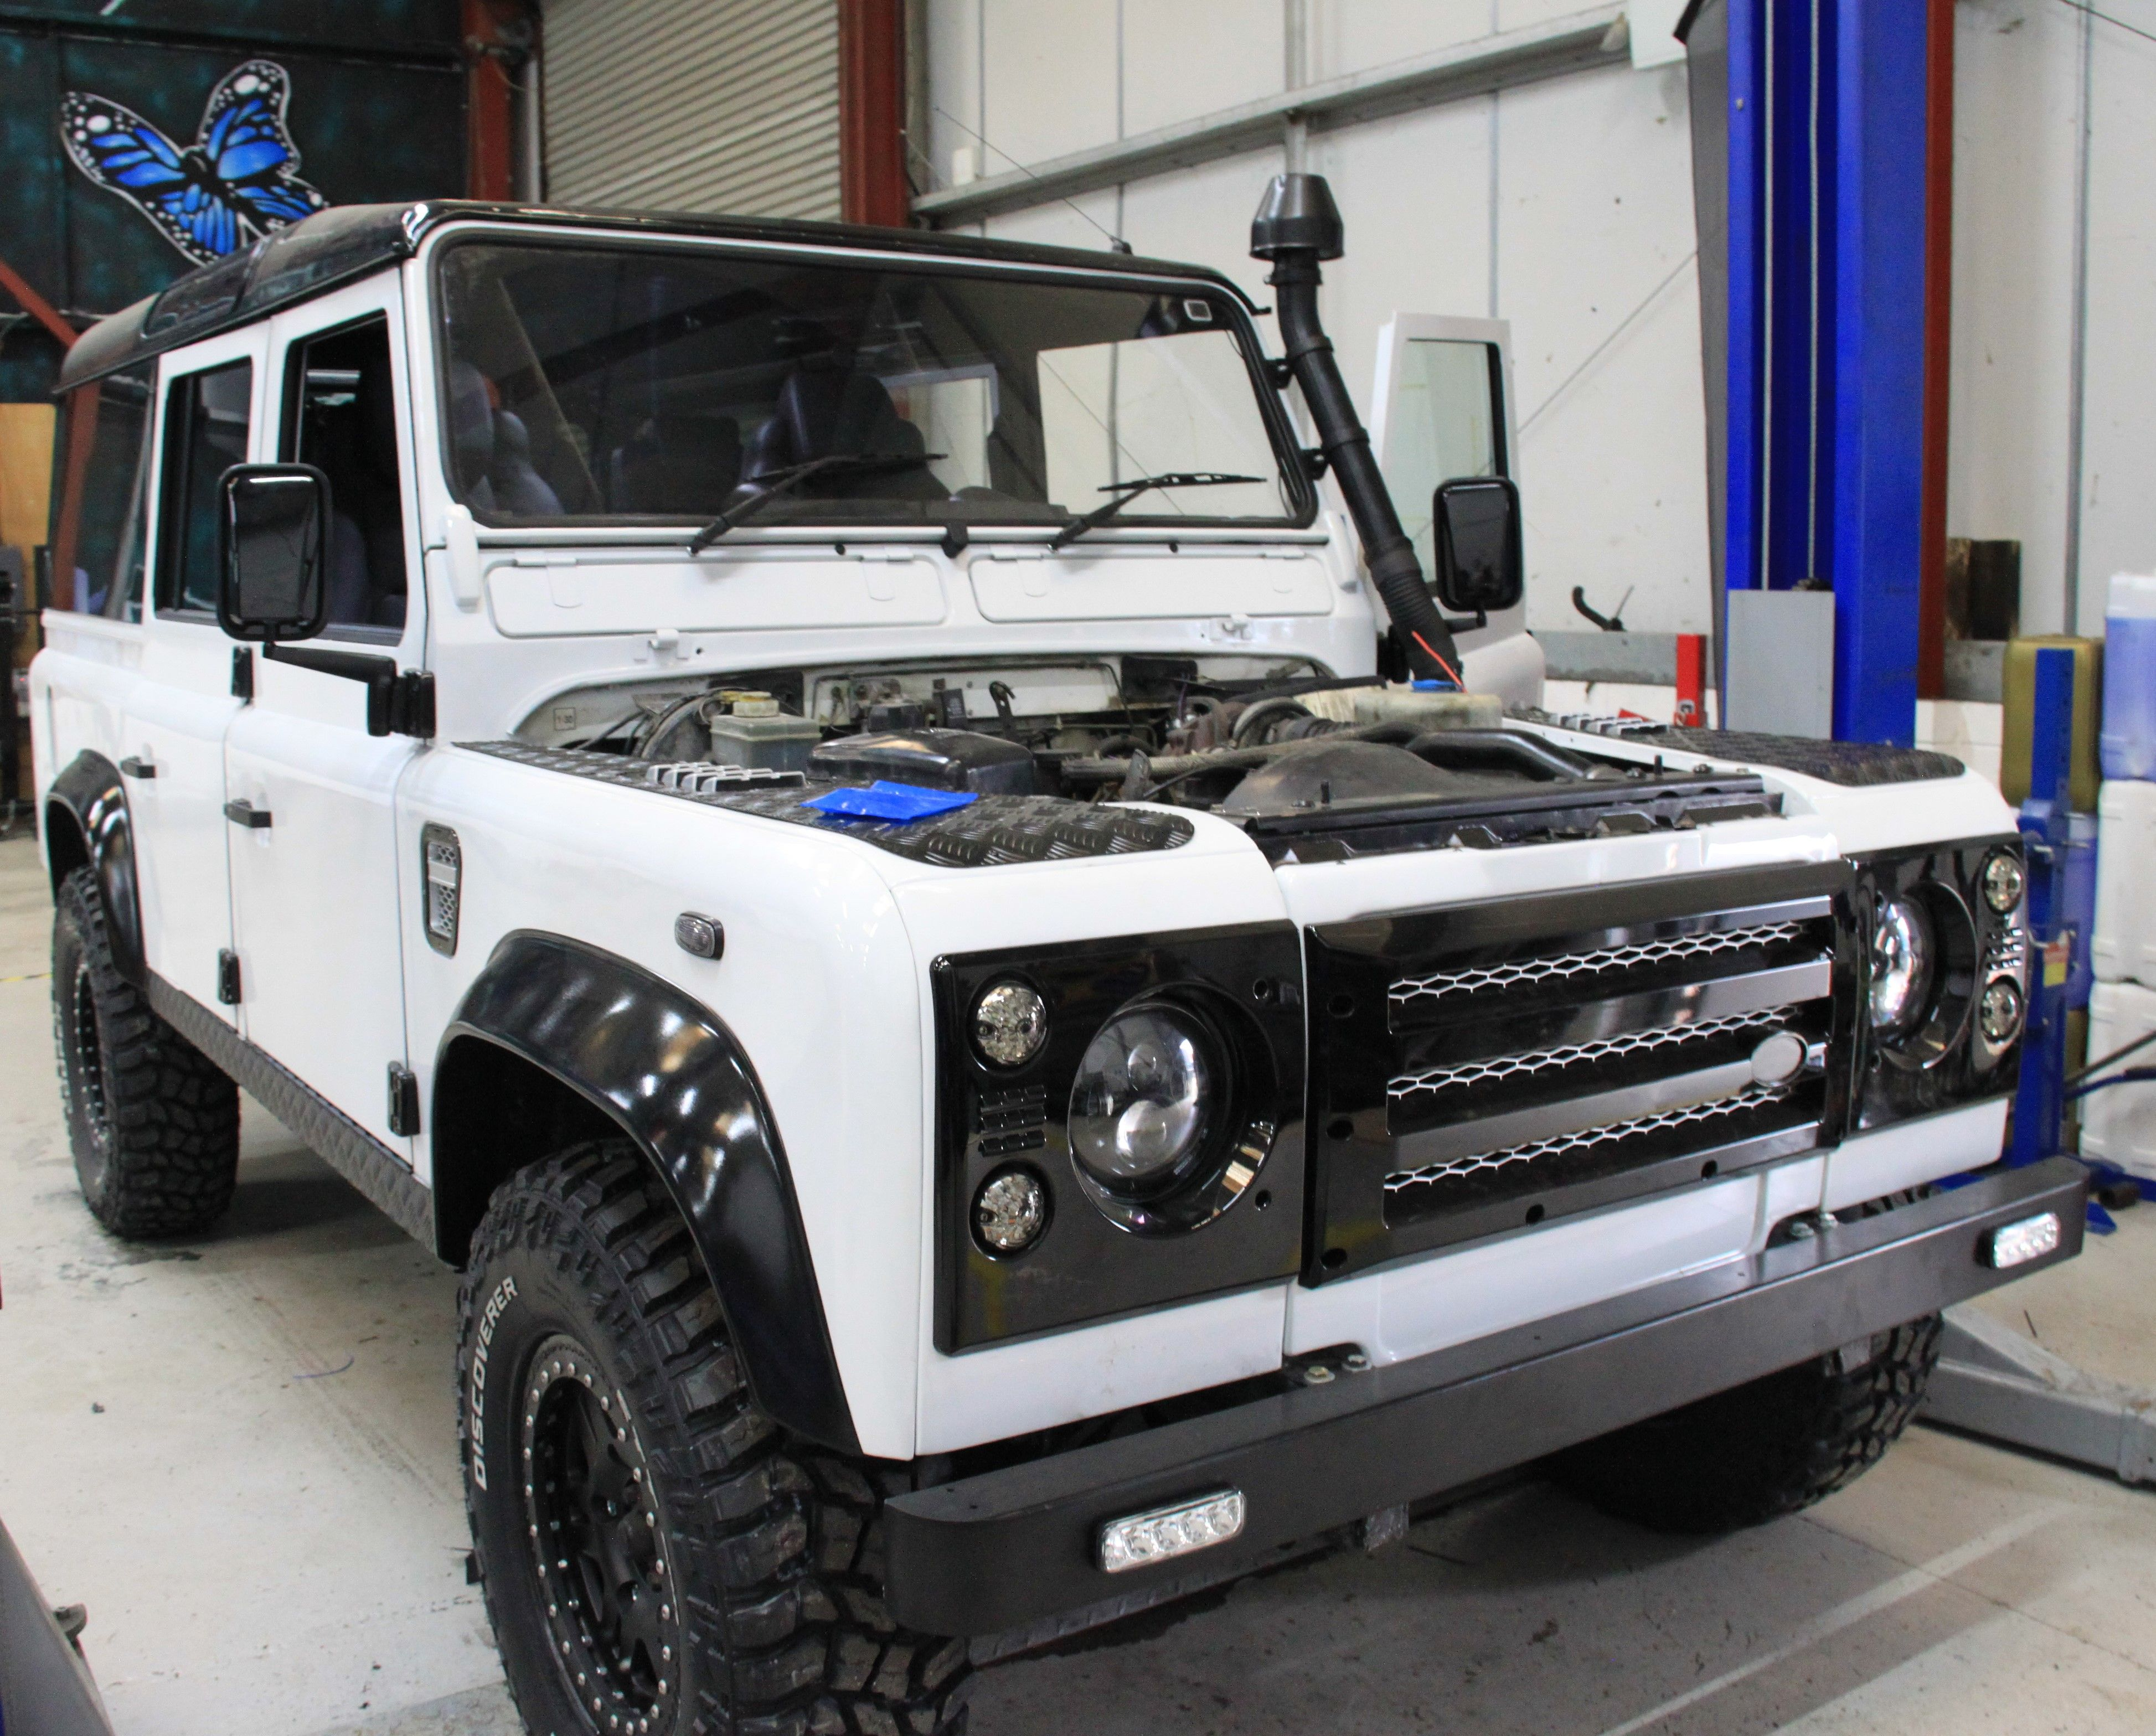 Range Rover Tuning Land Rover Styling Upgrade Packages Land Rover Defender Land Rover Defender